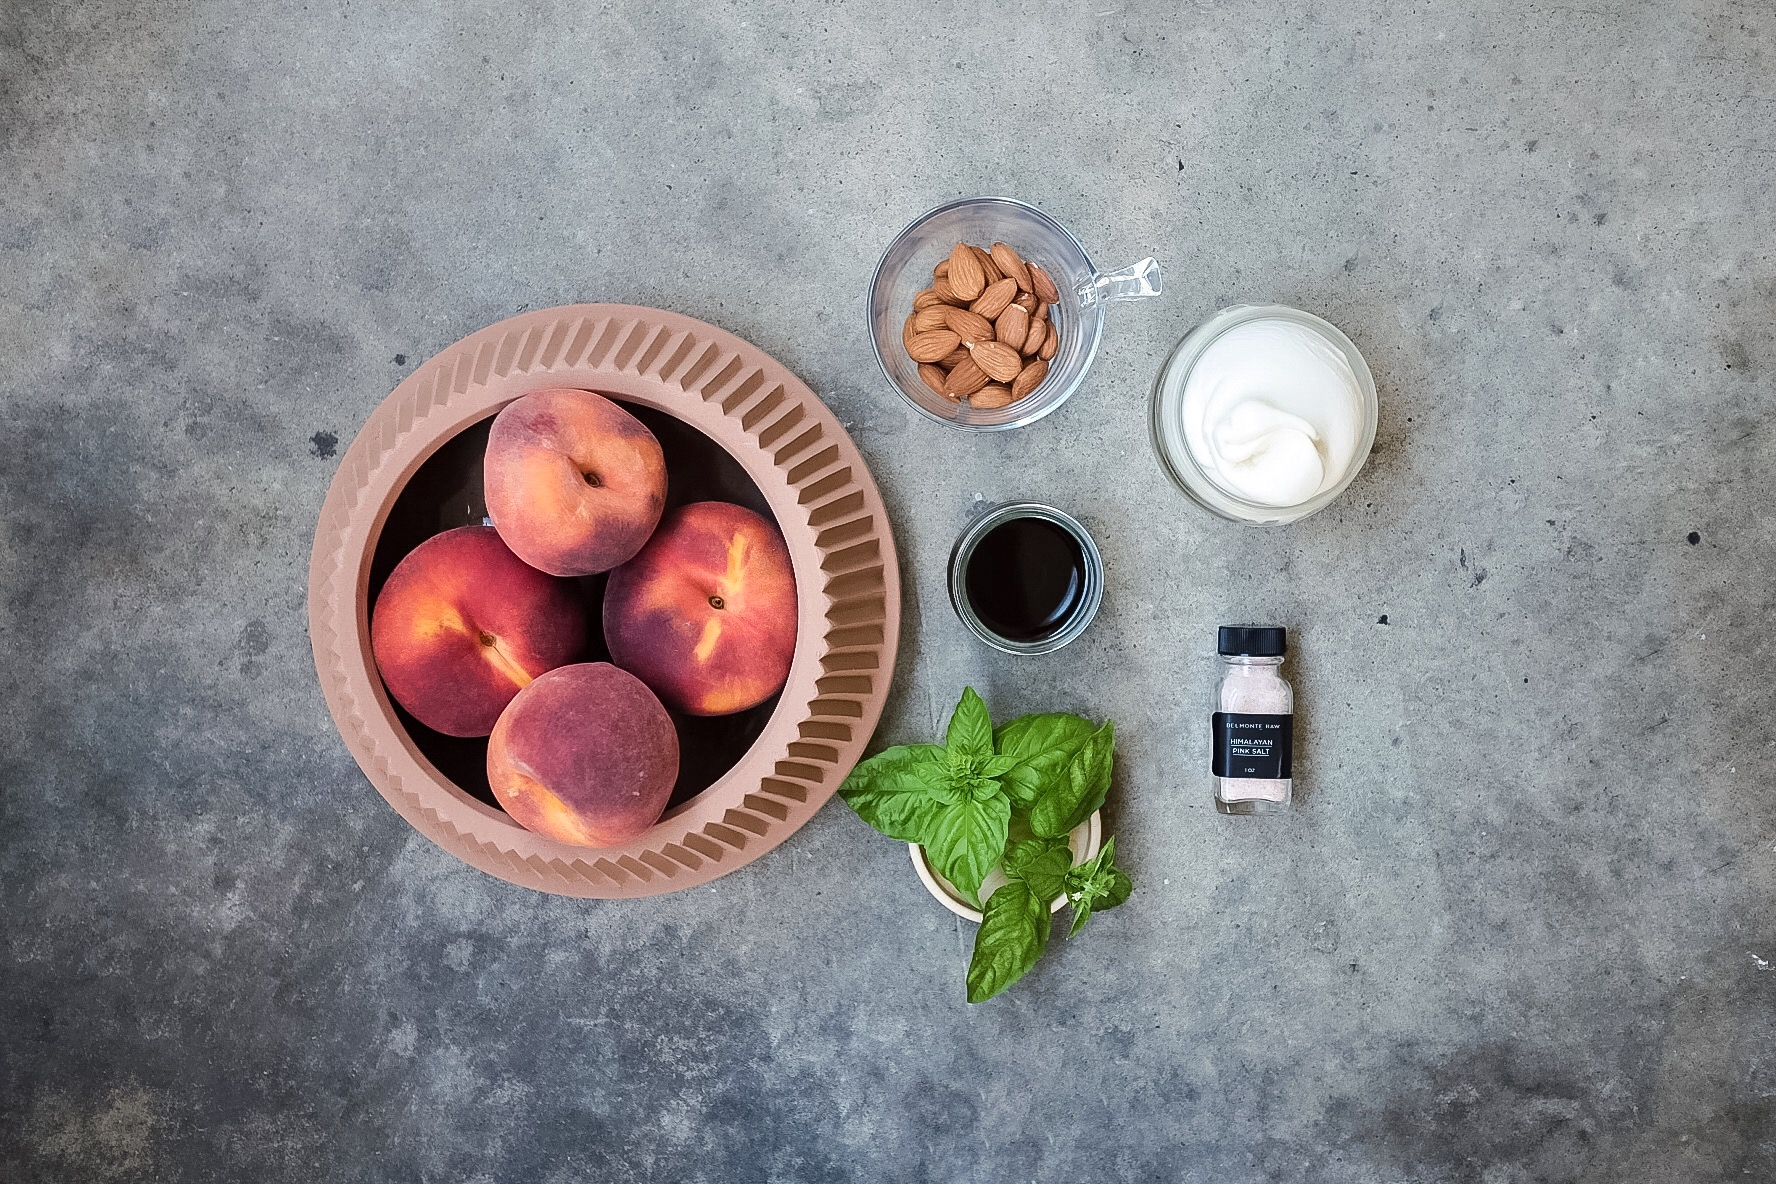 Fresh Ontario peaches and basil from my garden and we are all ready to start cooking.